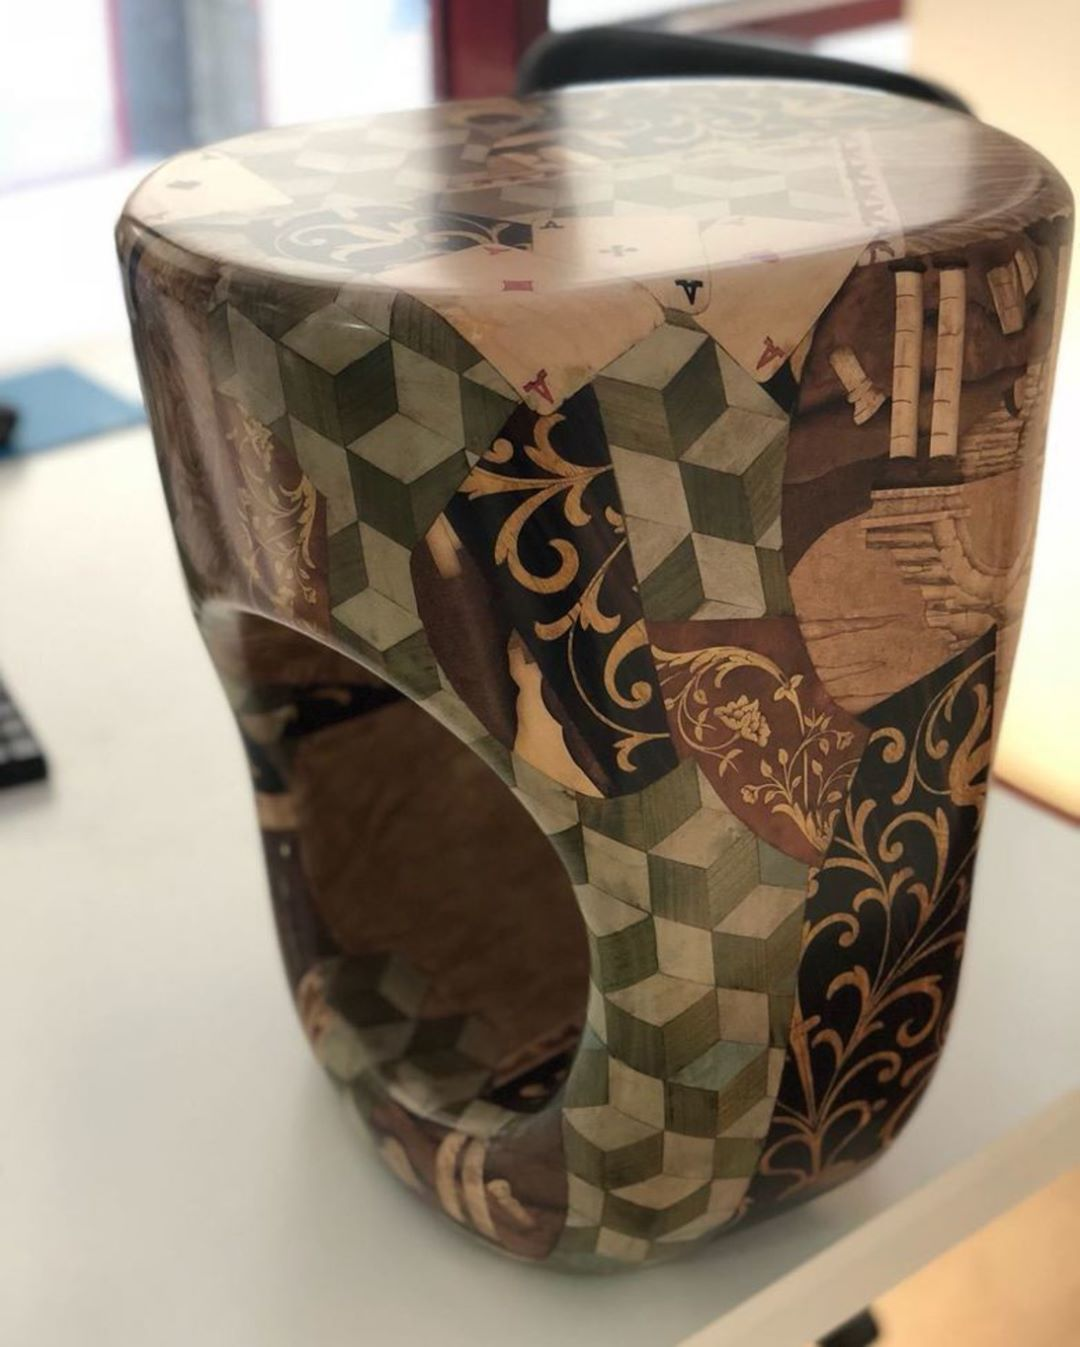 Marquetry Masterpieces by Project CULTURE - Maison et Objet 2019